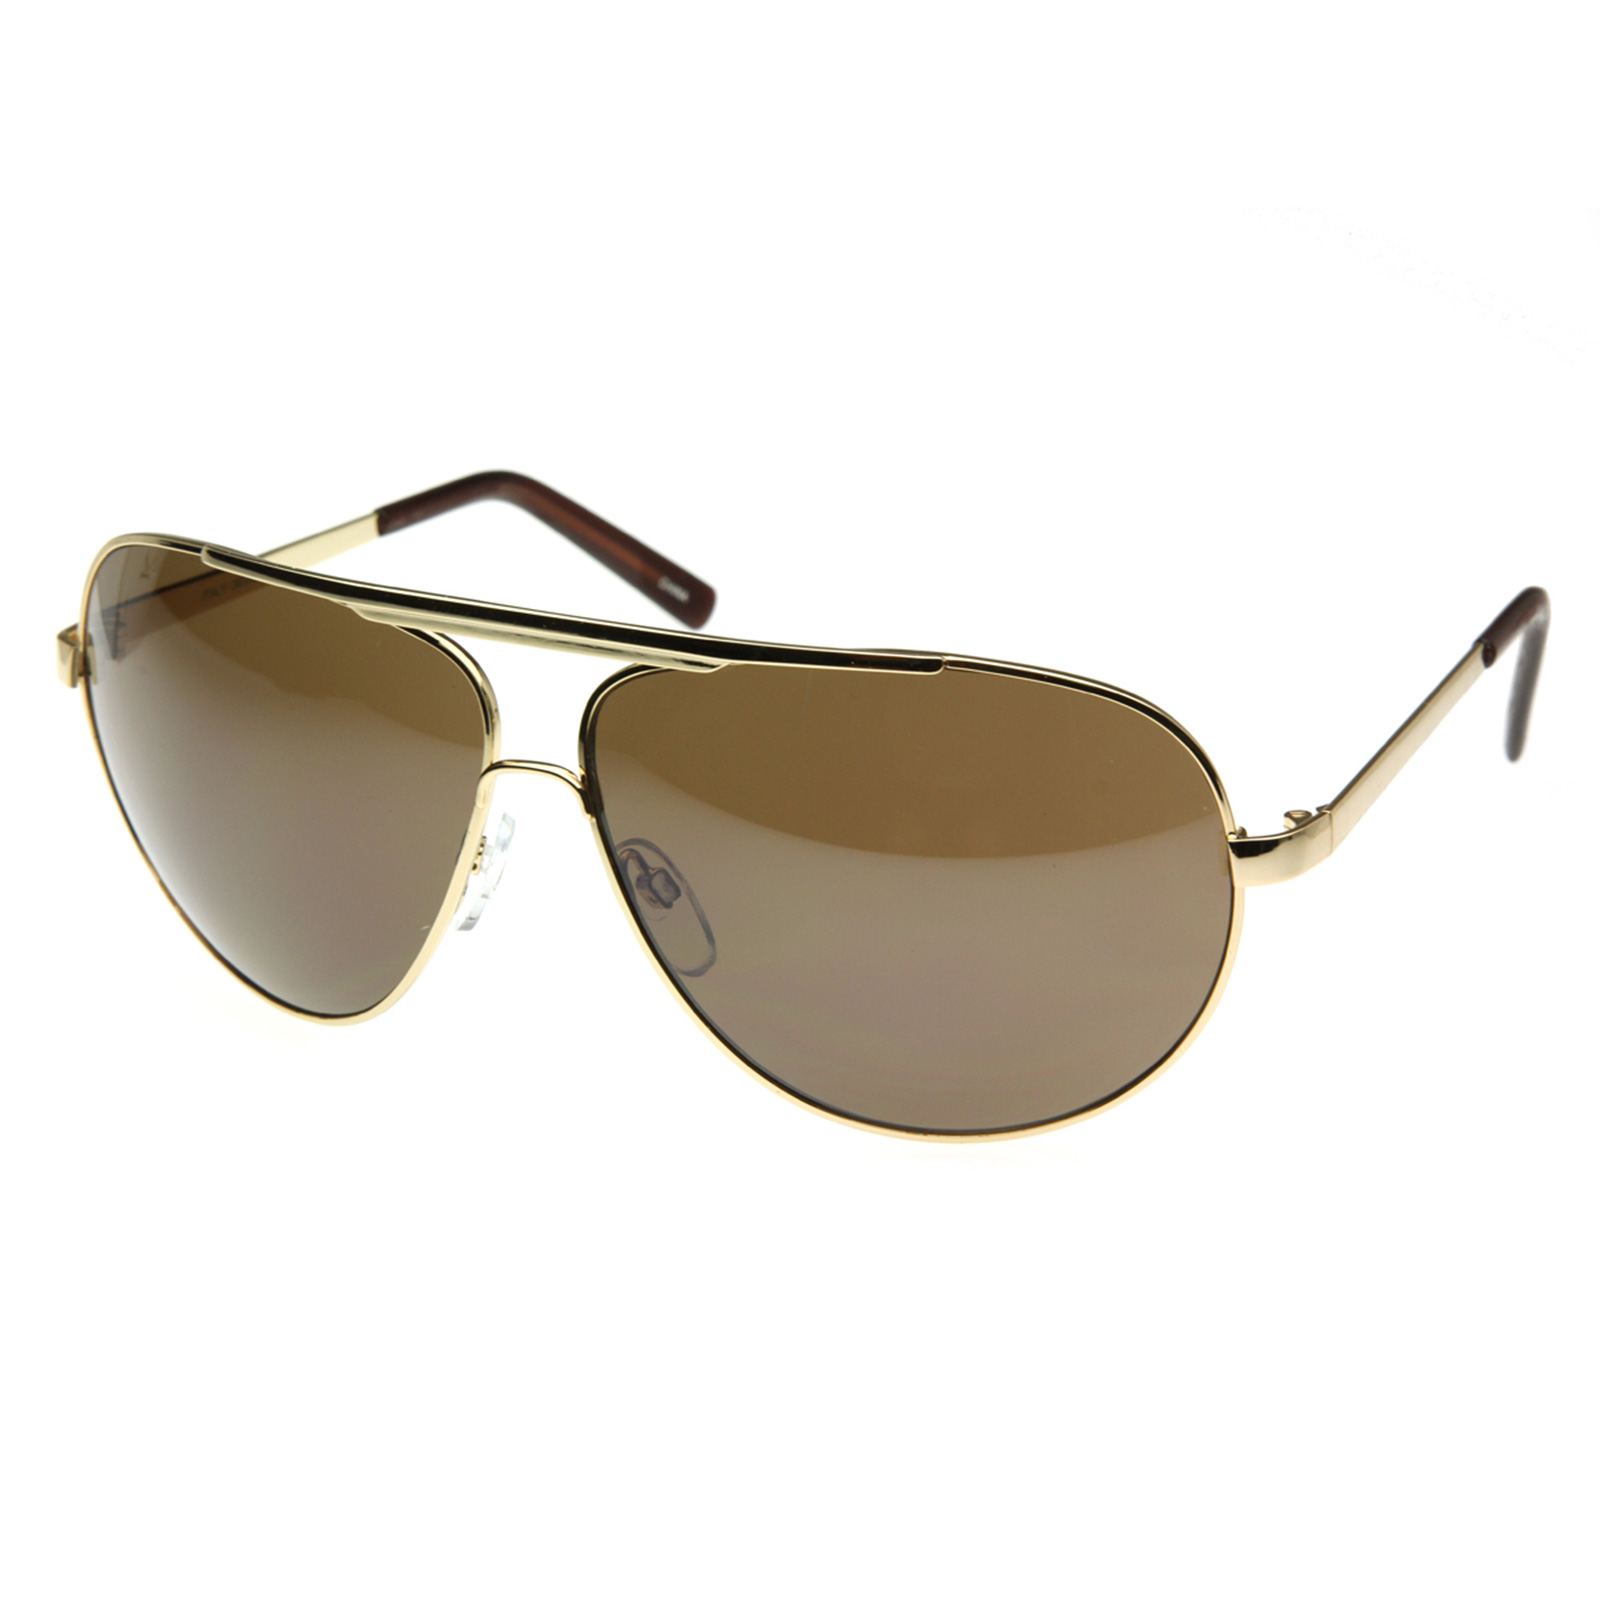 Oversized Gold Frame Sunglasses : High Quality Full Frame Big X-Large Oversized Metal ...